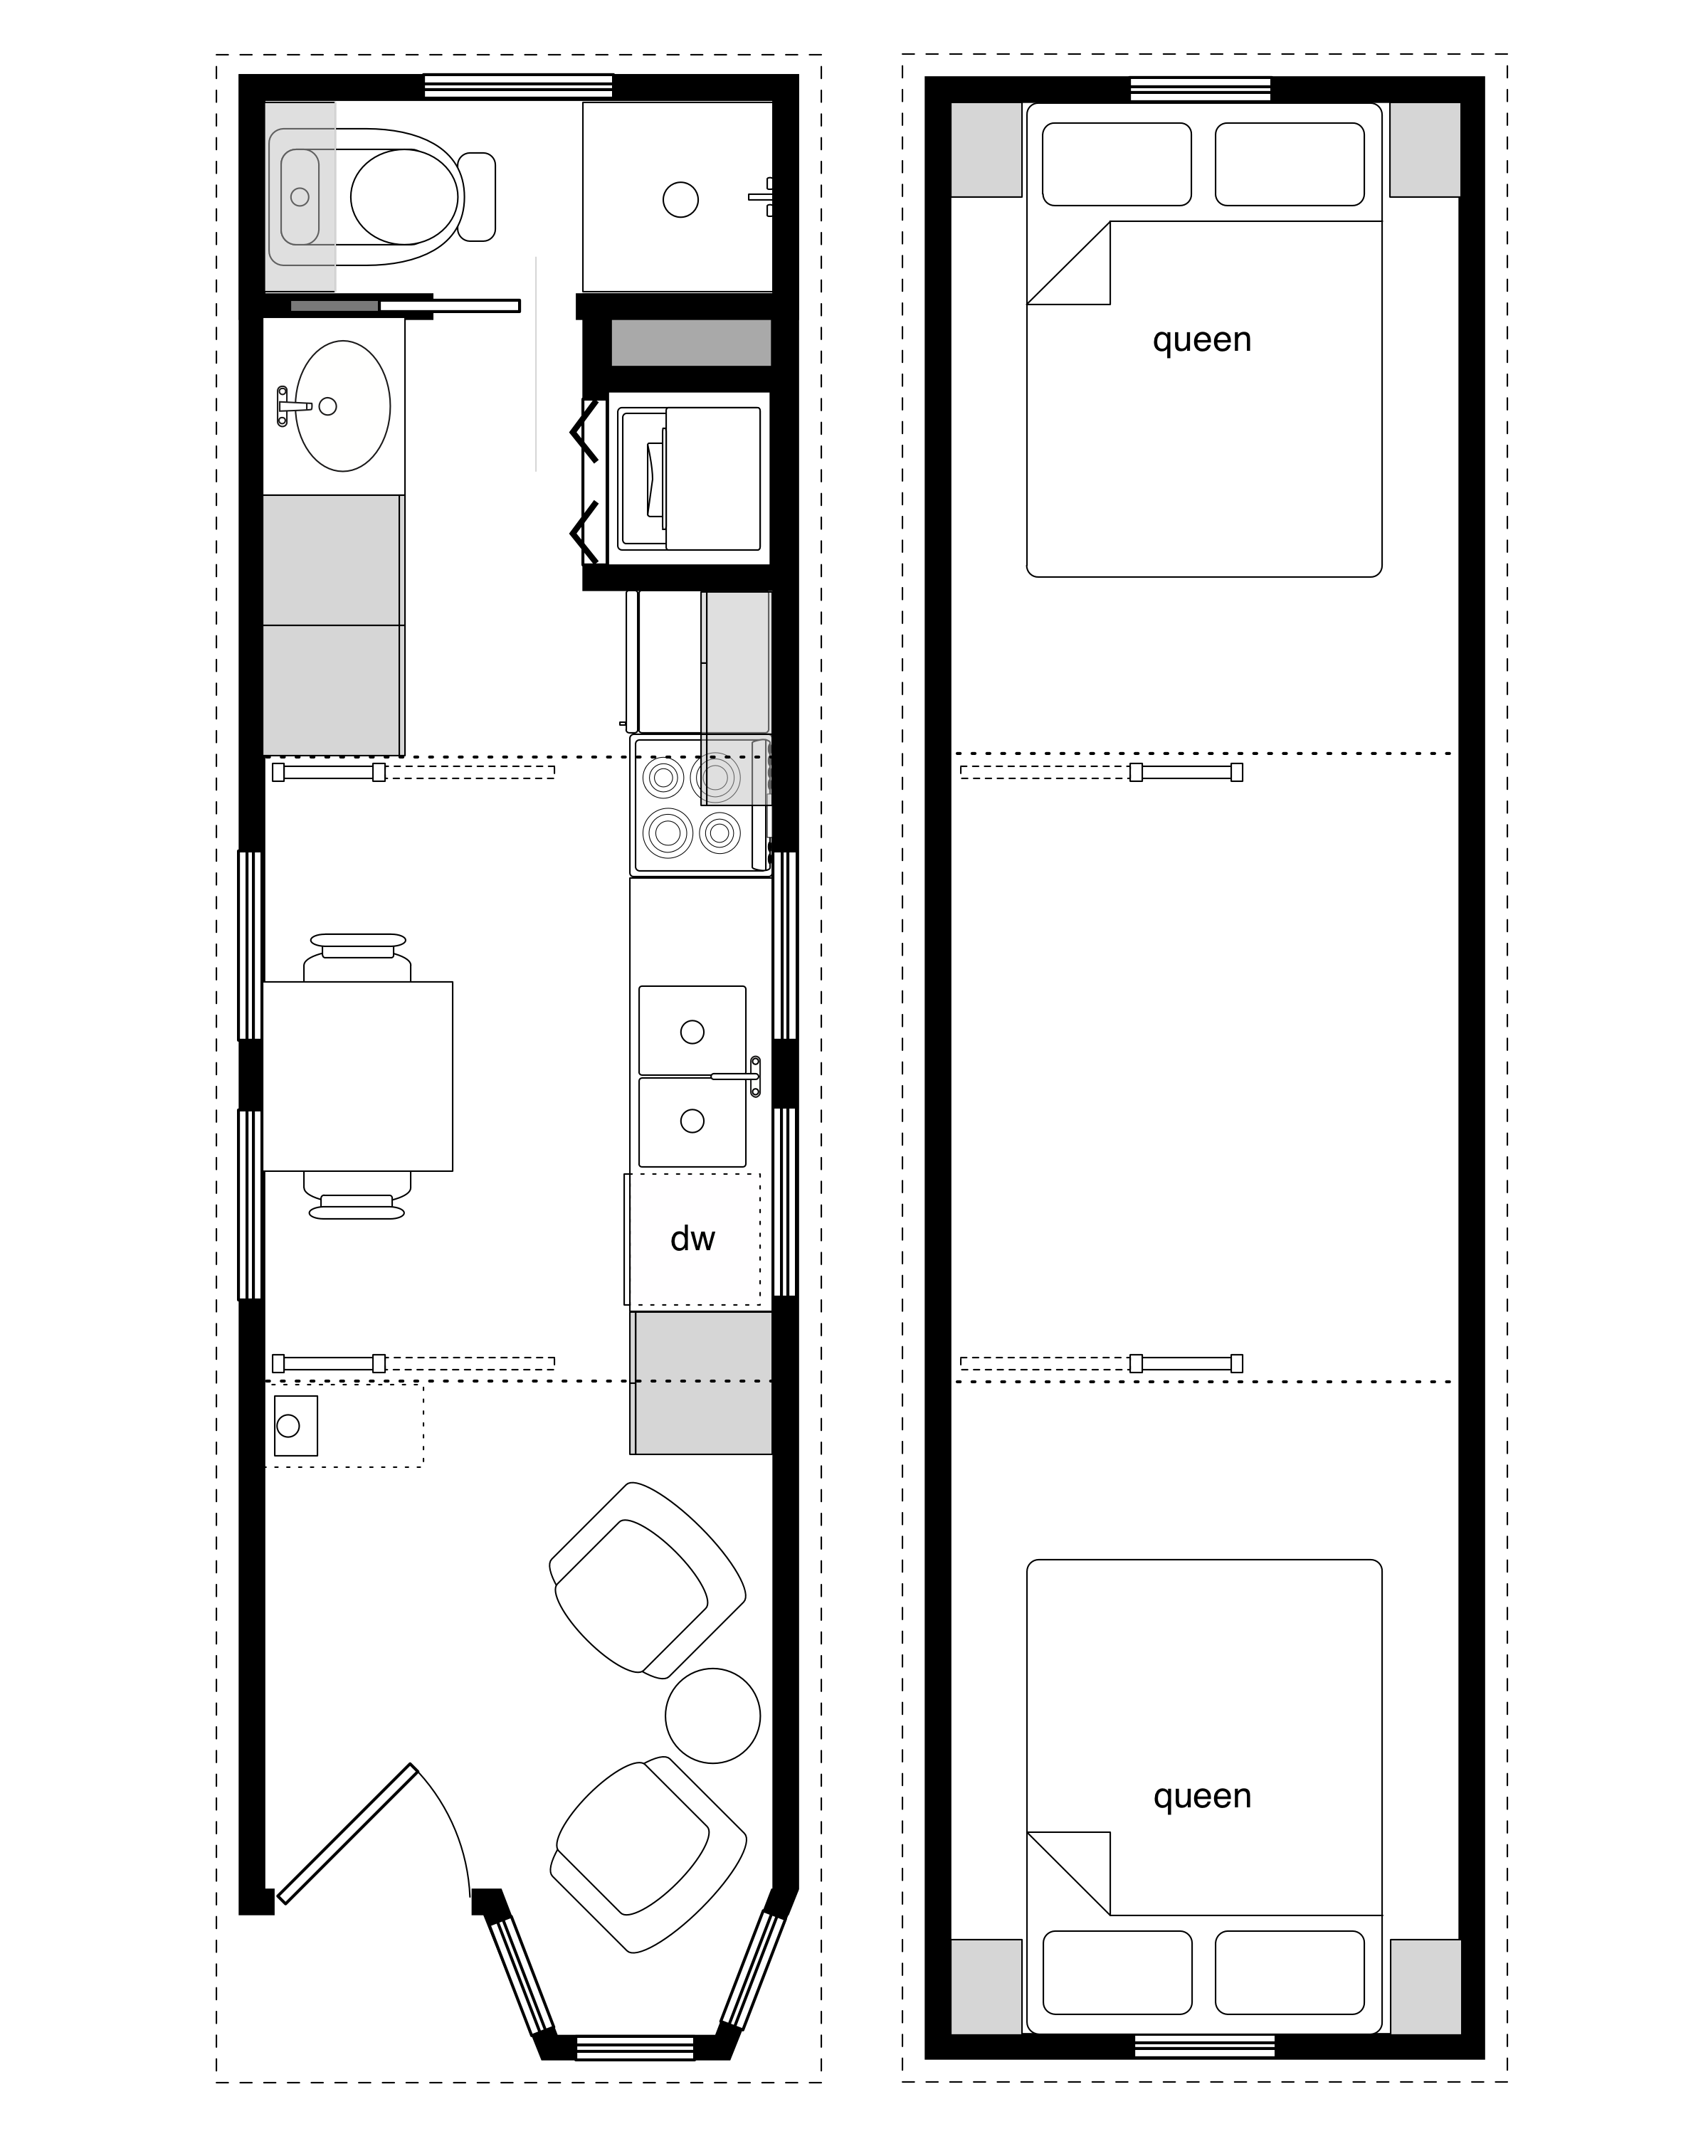 Super Easy to Build Tiny House Plans Tiny house design Coastal